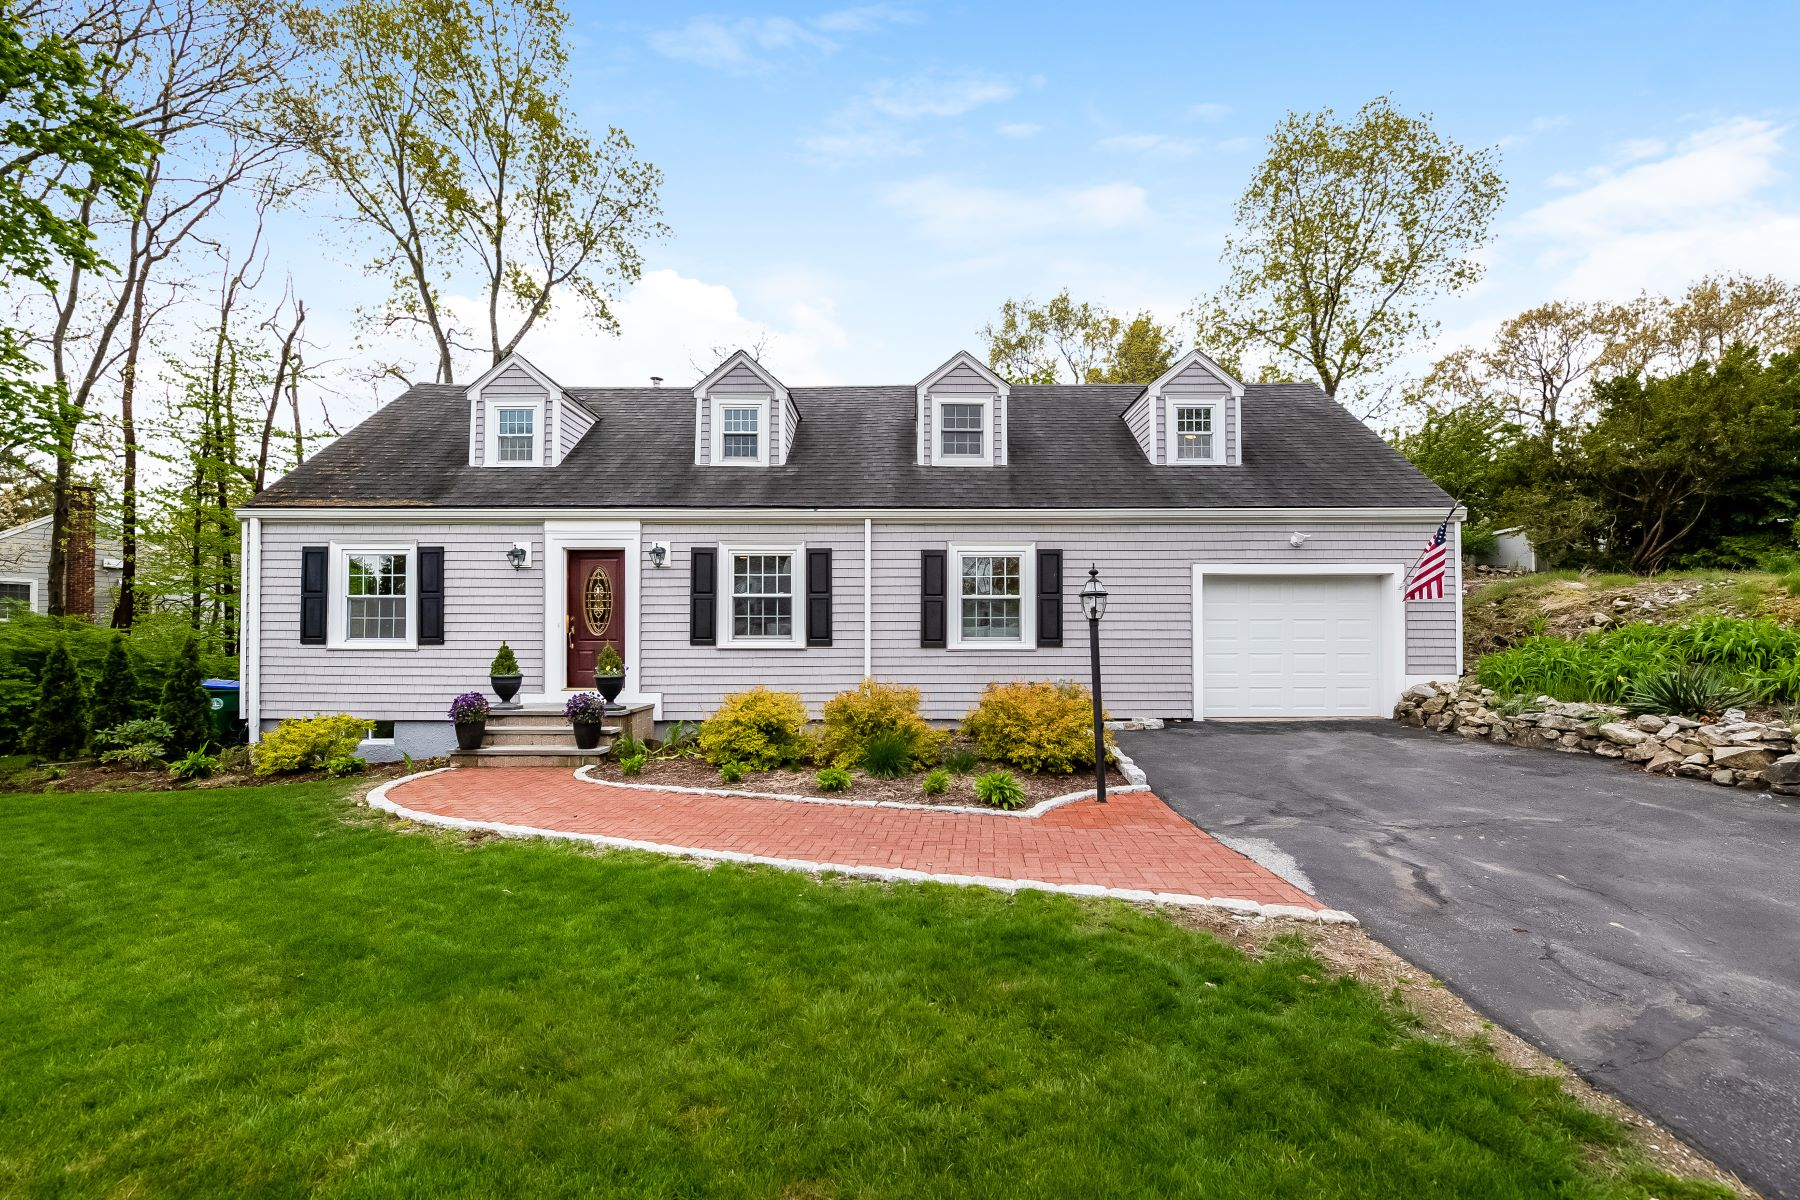 Single Family Homes for Active at 98 Westchester Drive 98 Westchester Dr Westwood, Massachusetts 02090 United States